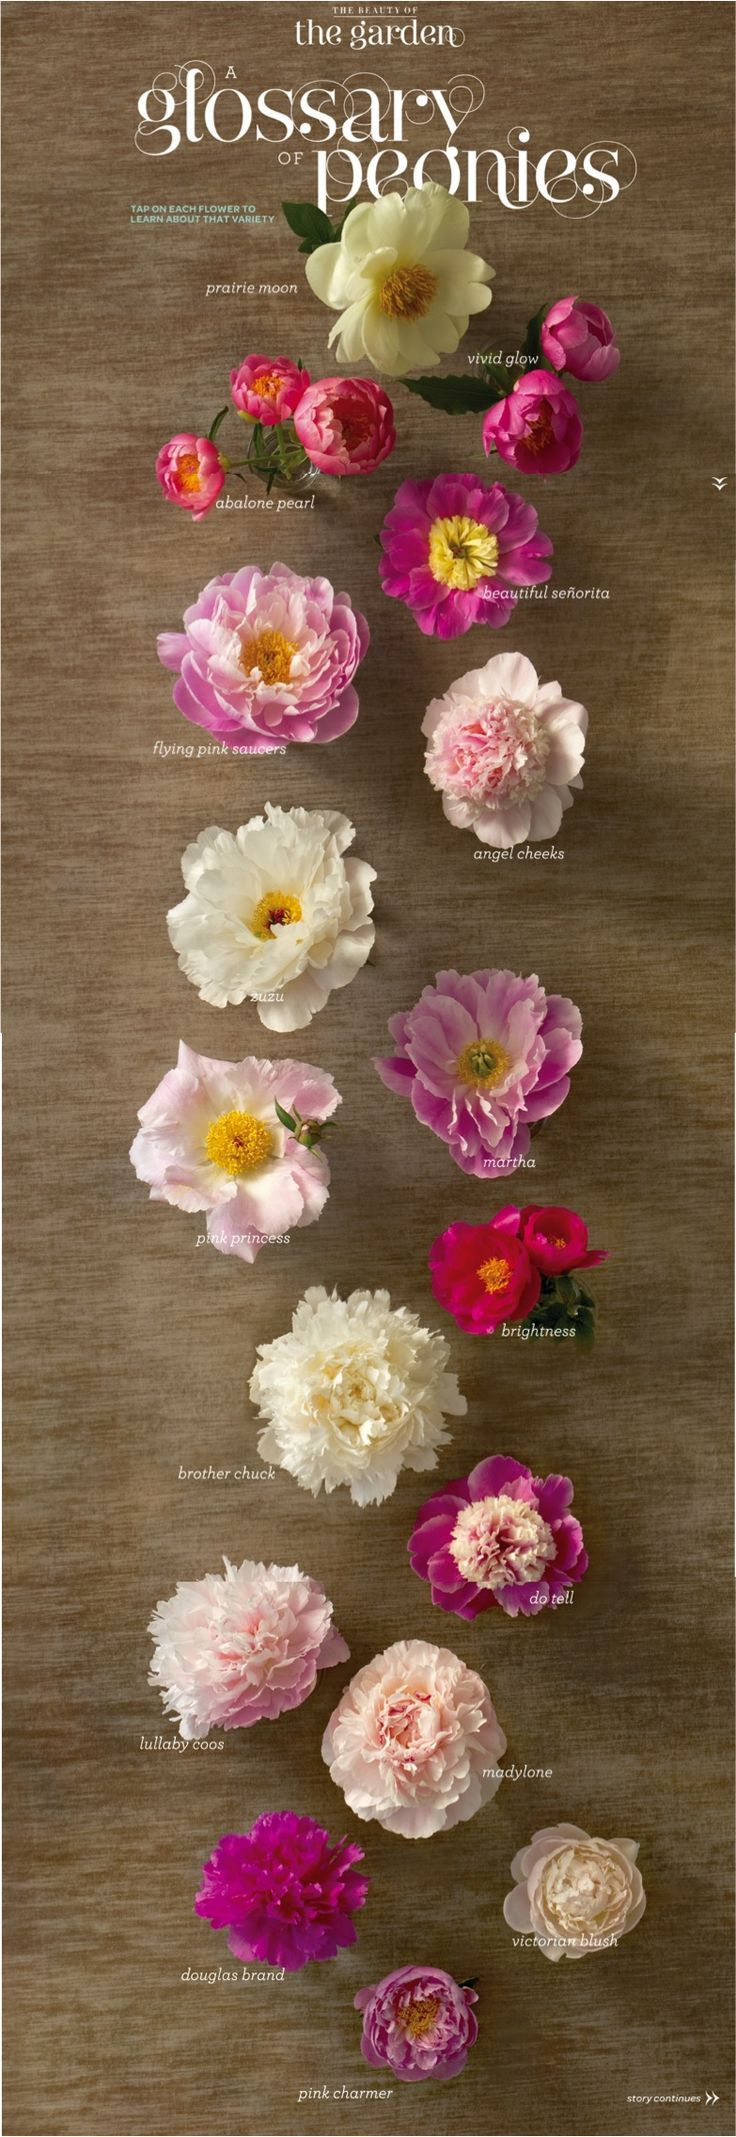 Kathleen Gagan talks about different peony forms, shows how to select and plant peony roots, and gives growing tips.While the beauty and elegance of peonies could seem intimidating to a novice gardener, caring for them is much simpler than you might think.